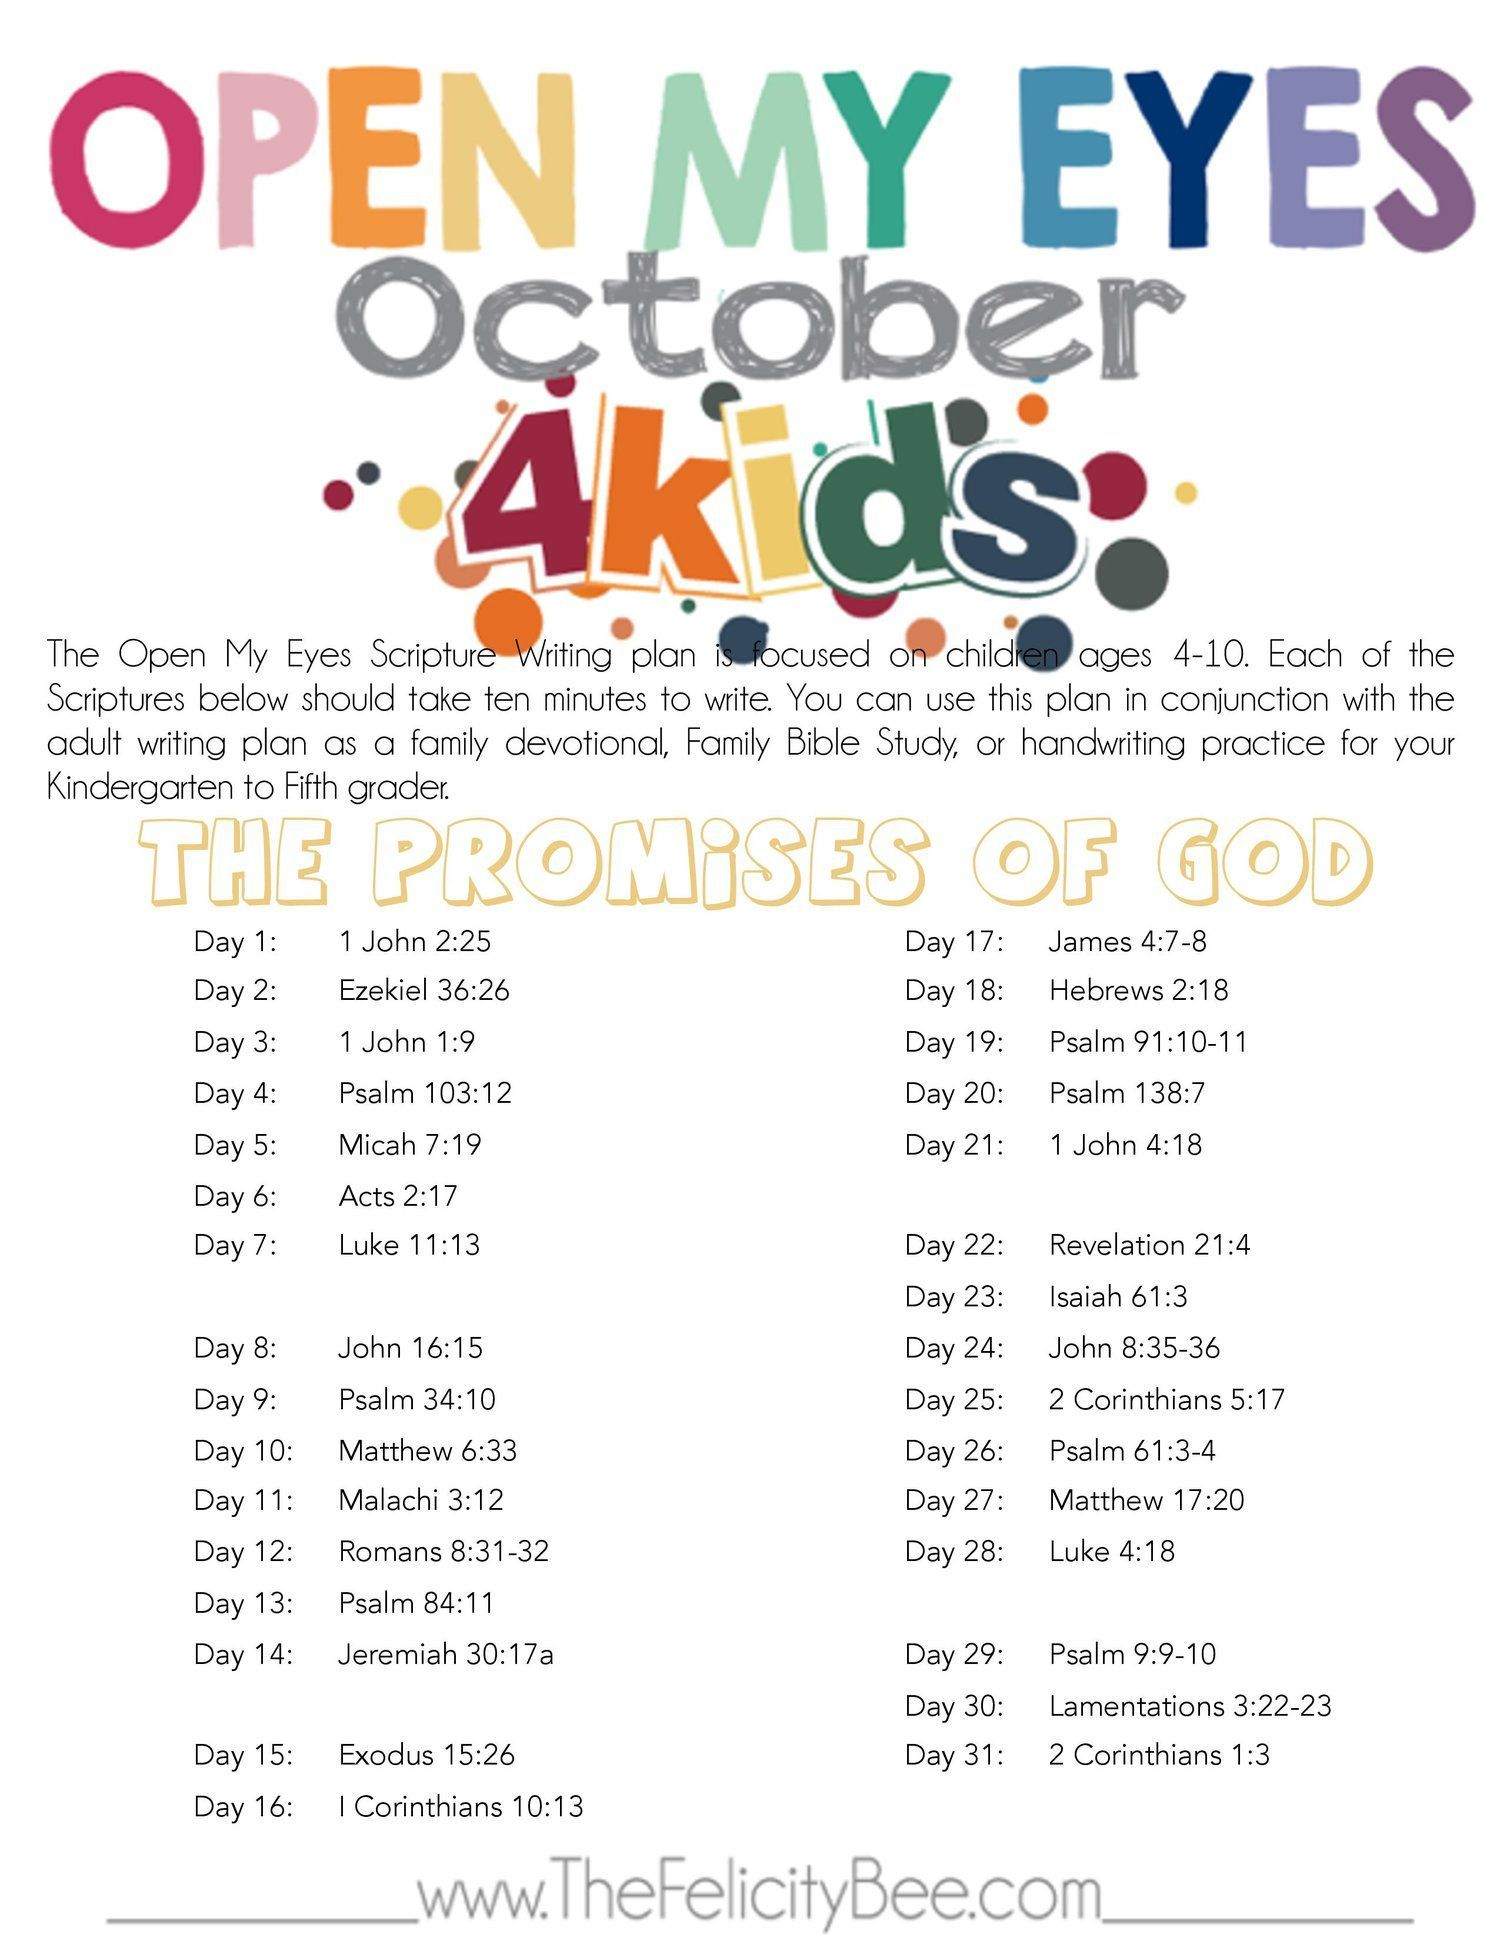 CLICK HERE to download your PDF of this month's plan